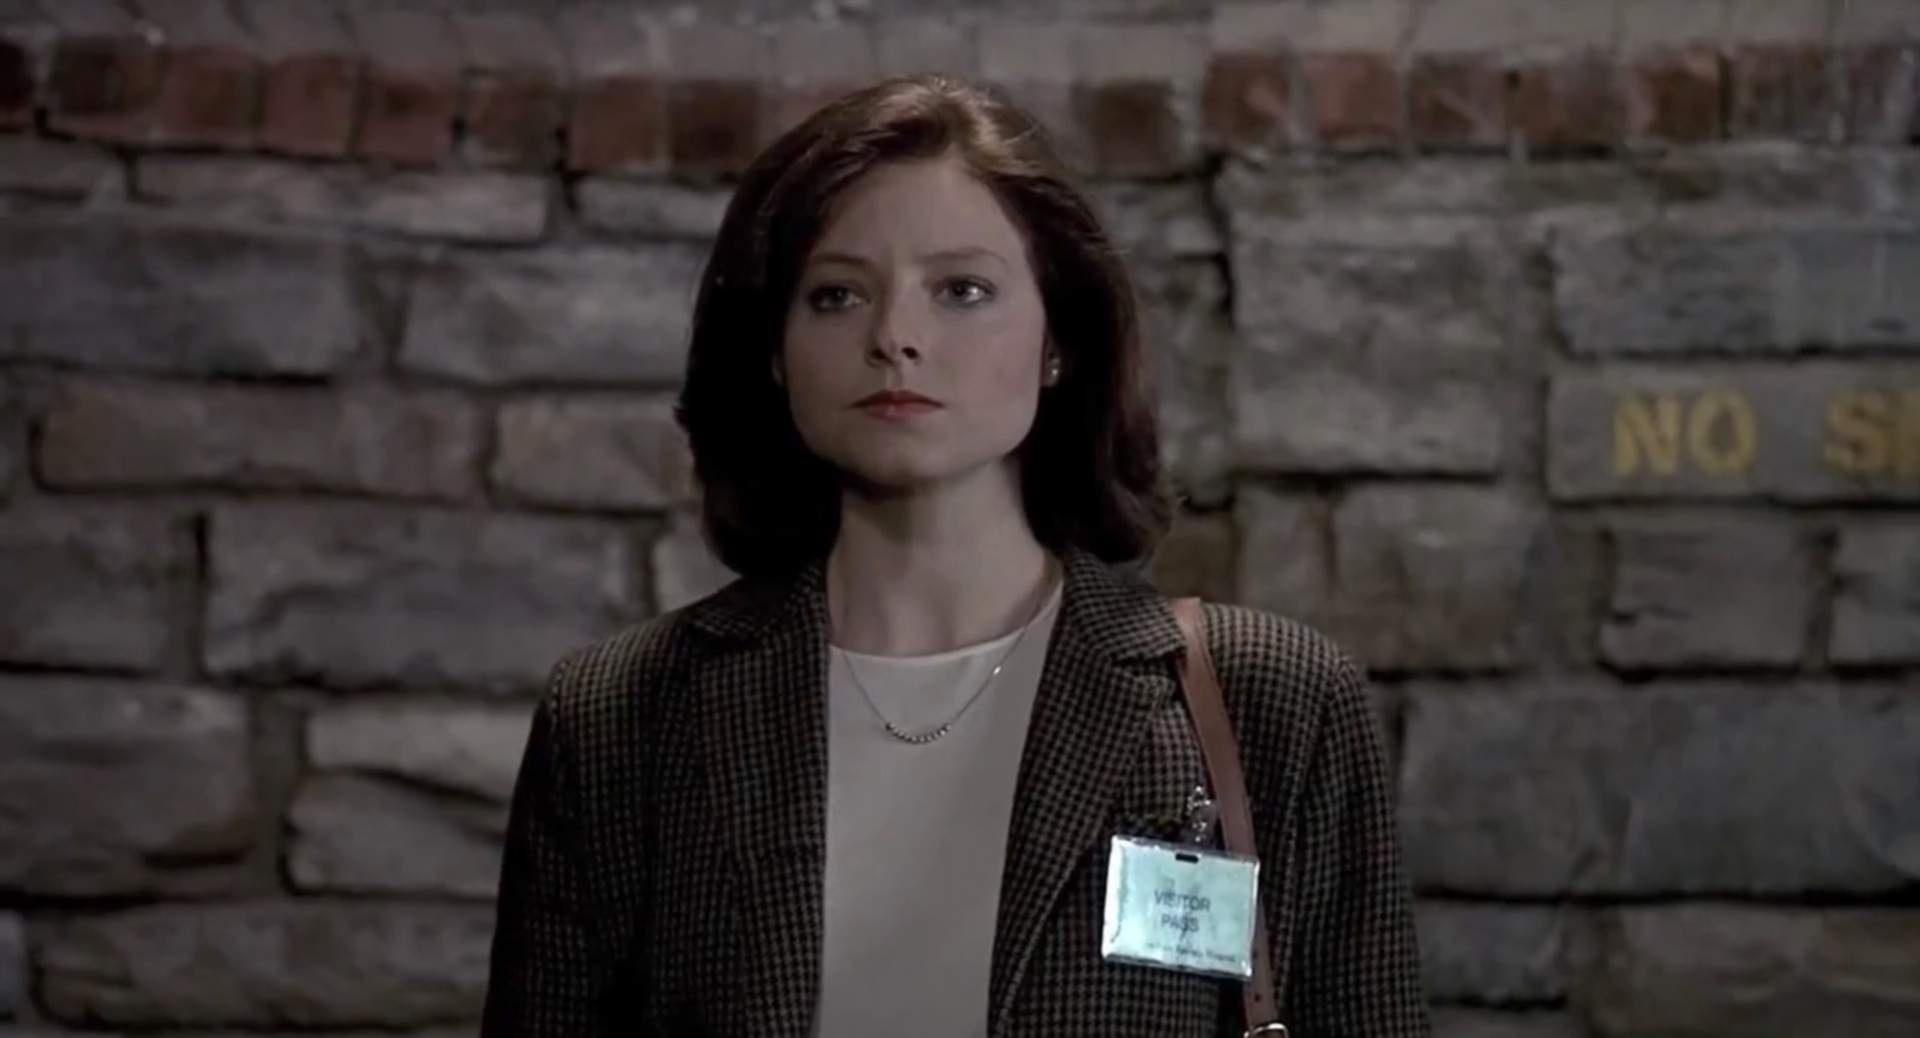 jodie-foster-as-clarice-starling-in-the-silence.jpg